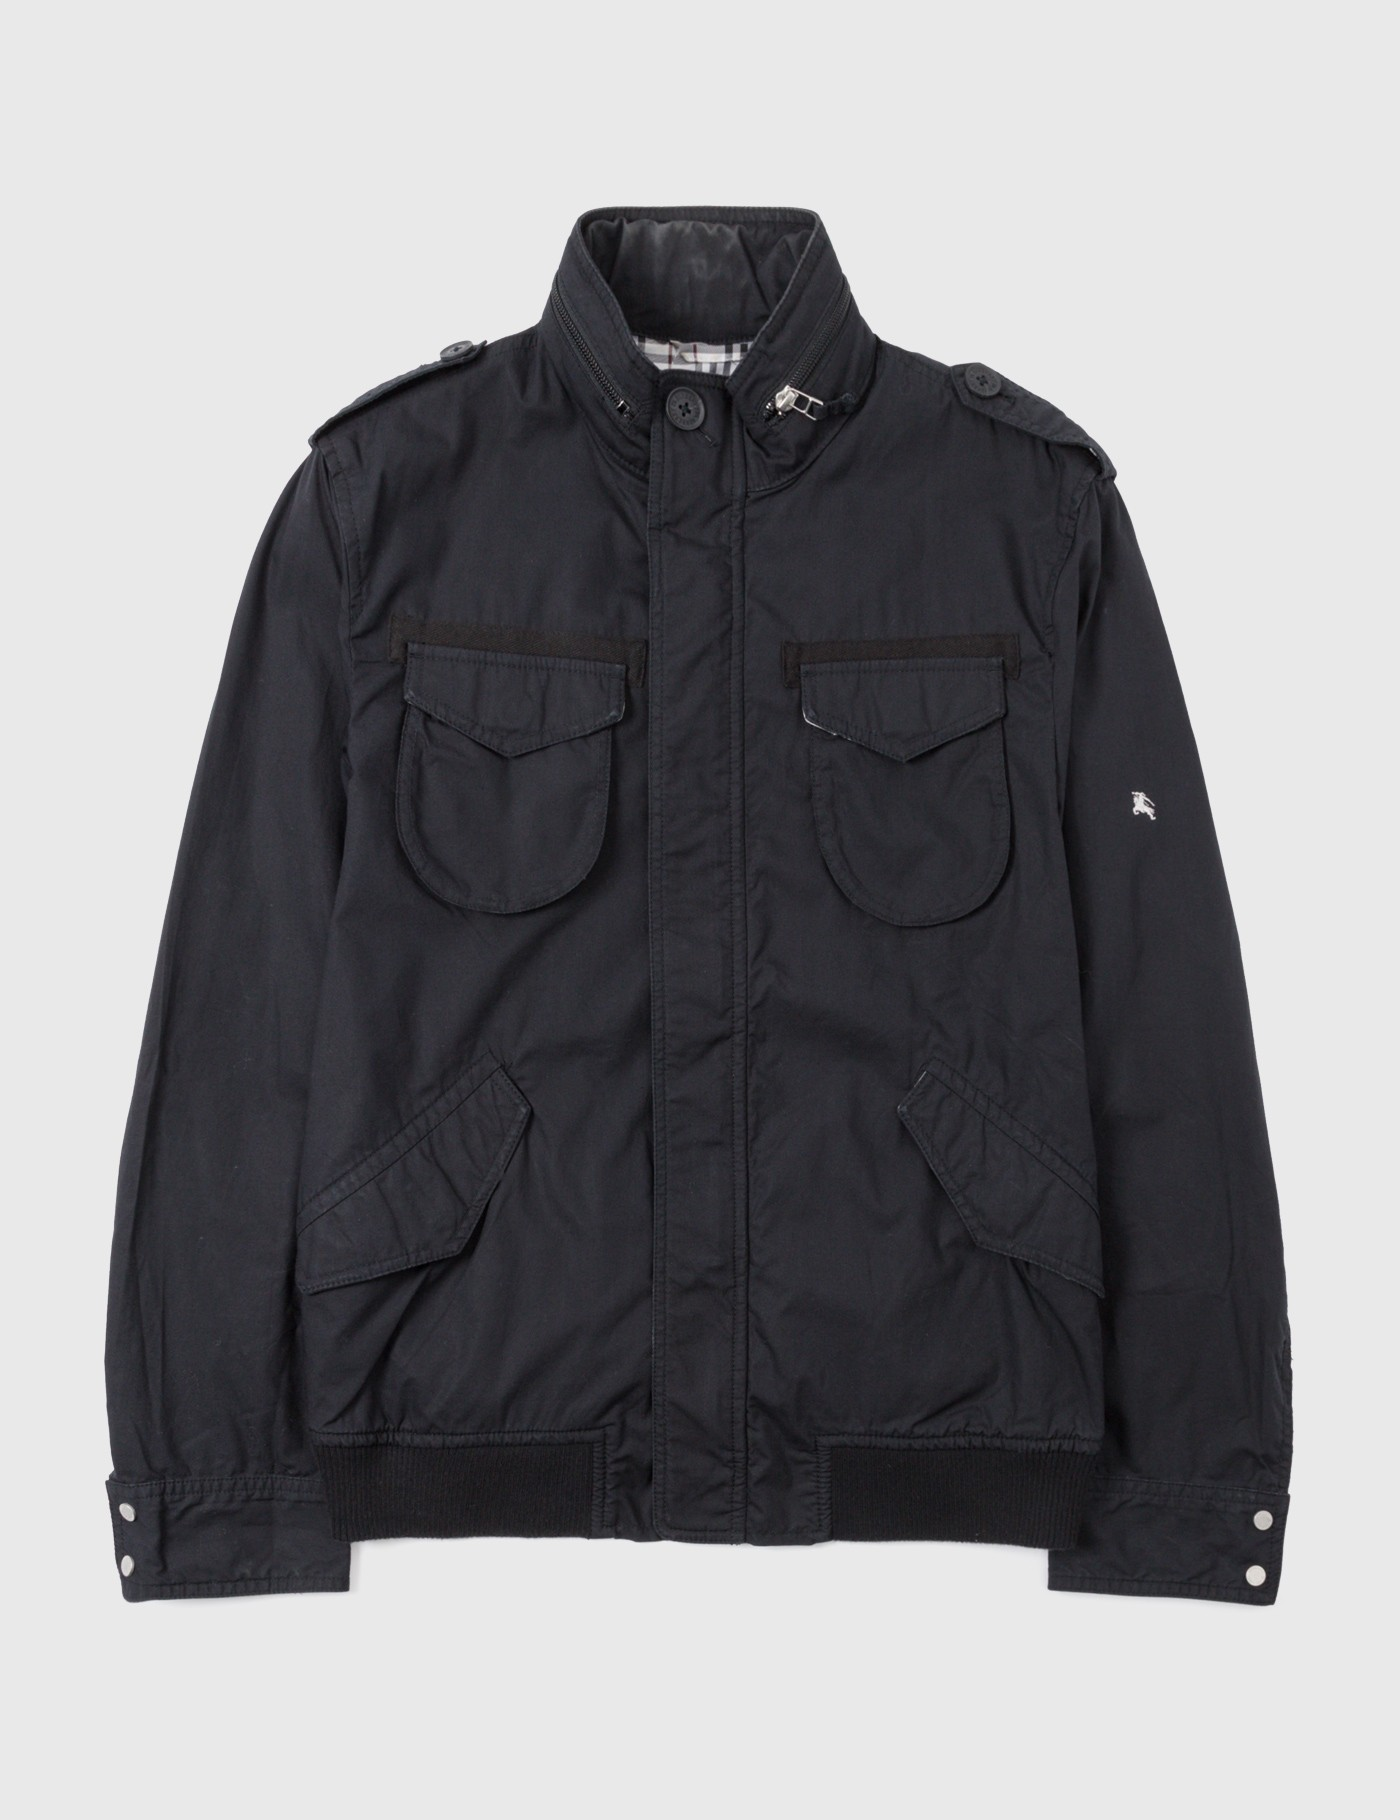 Burberry Black Label Military Jacket